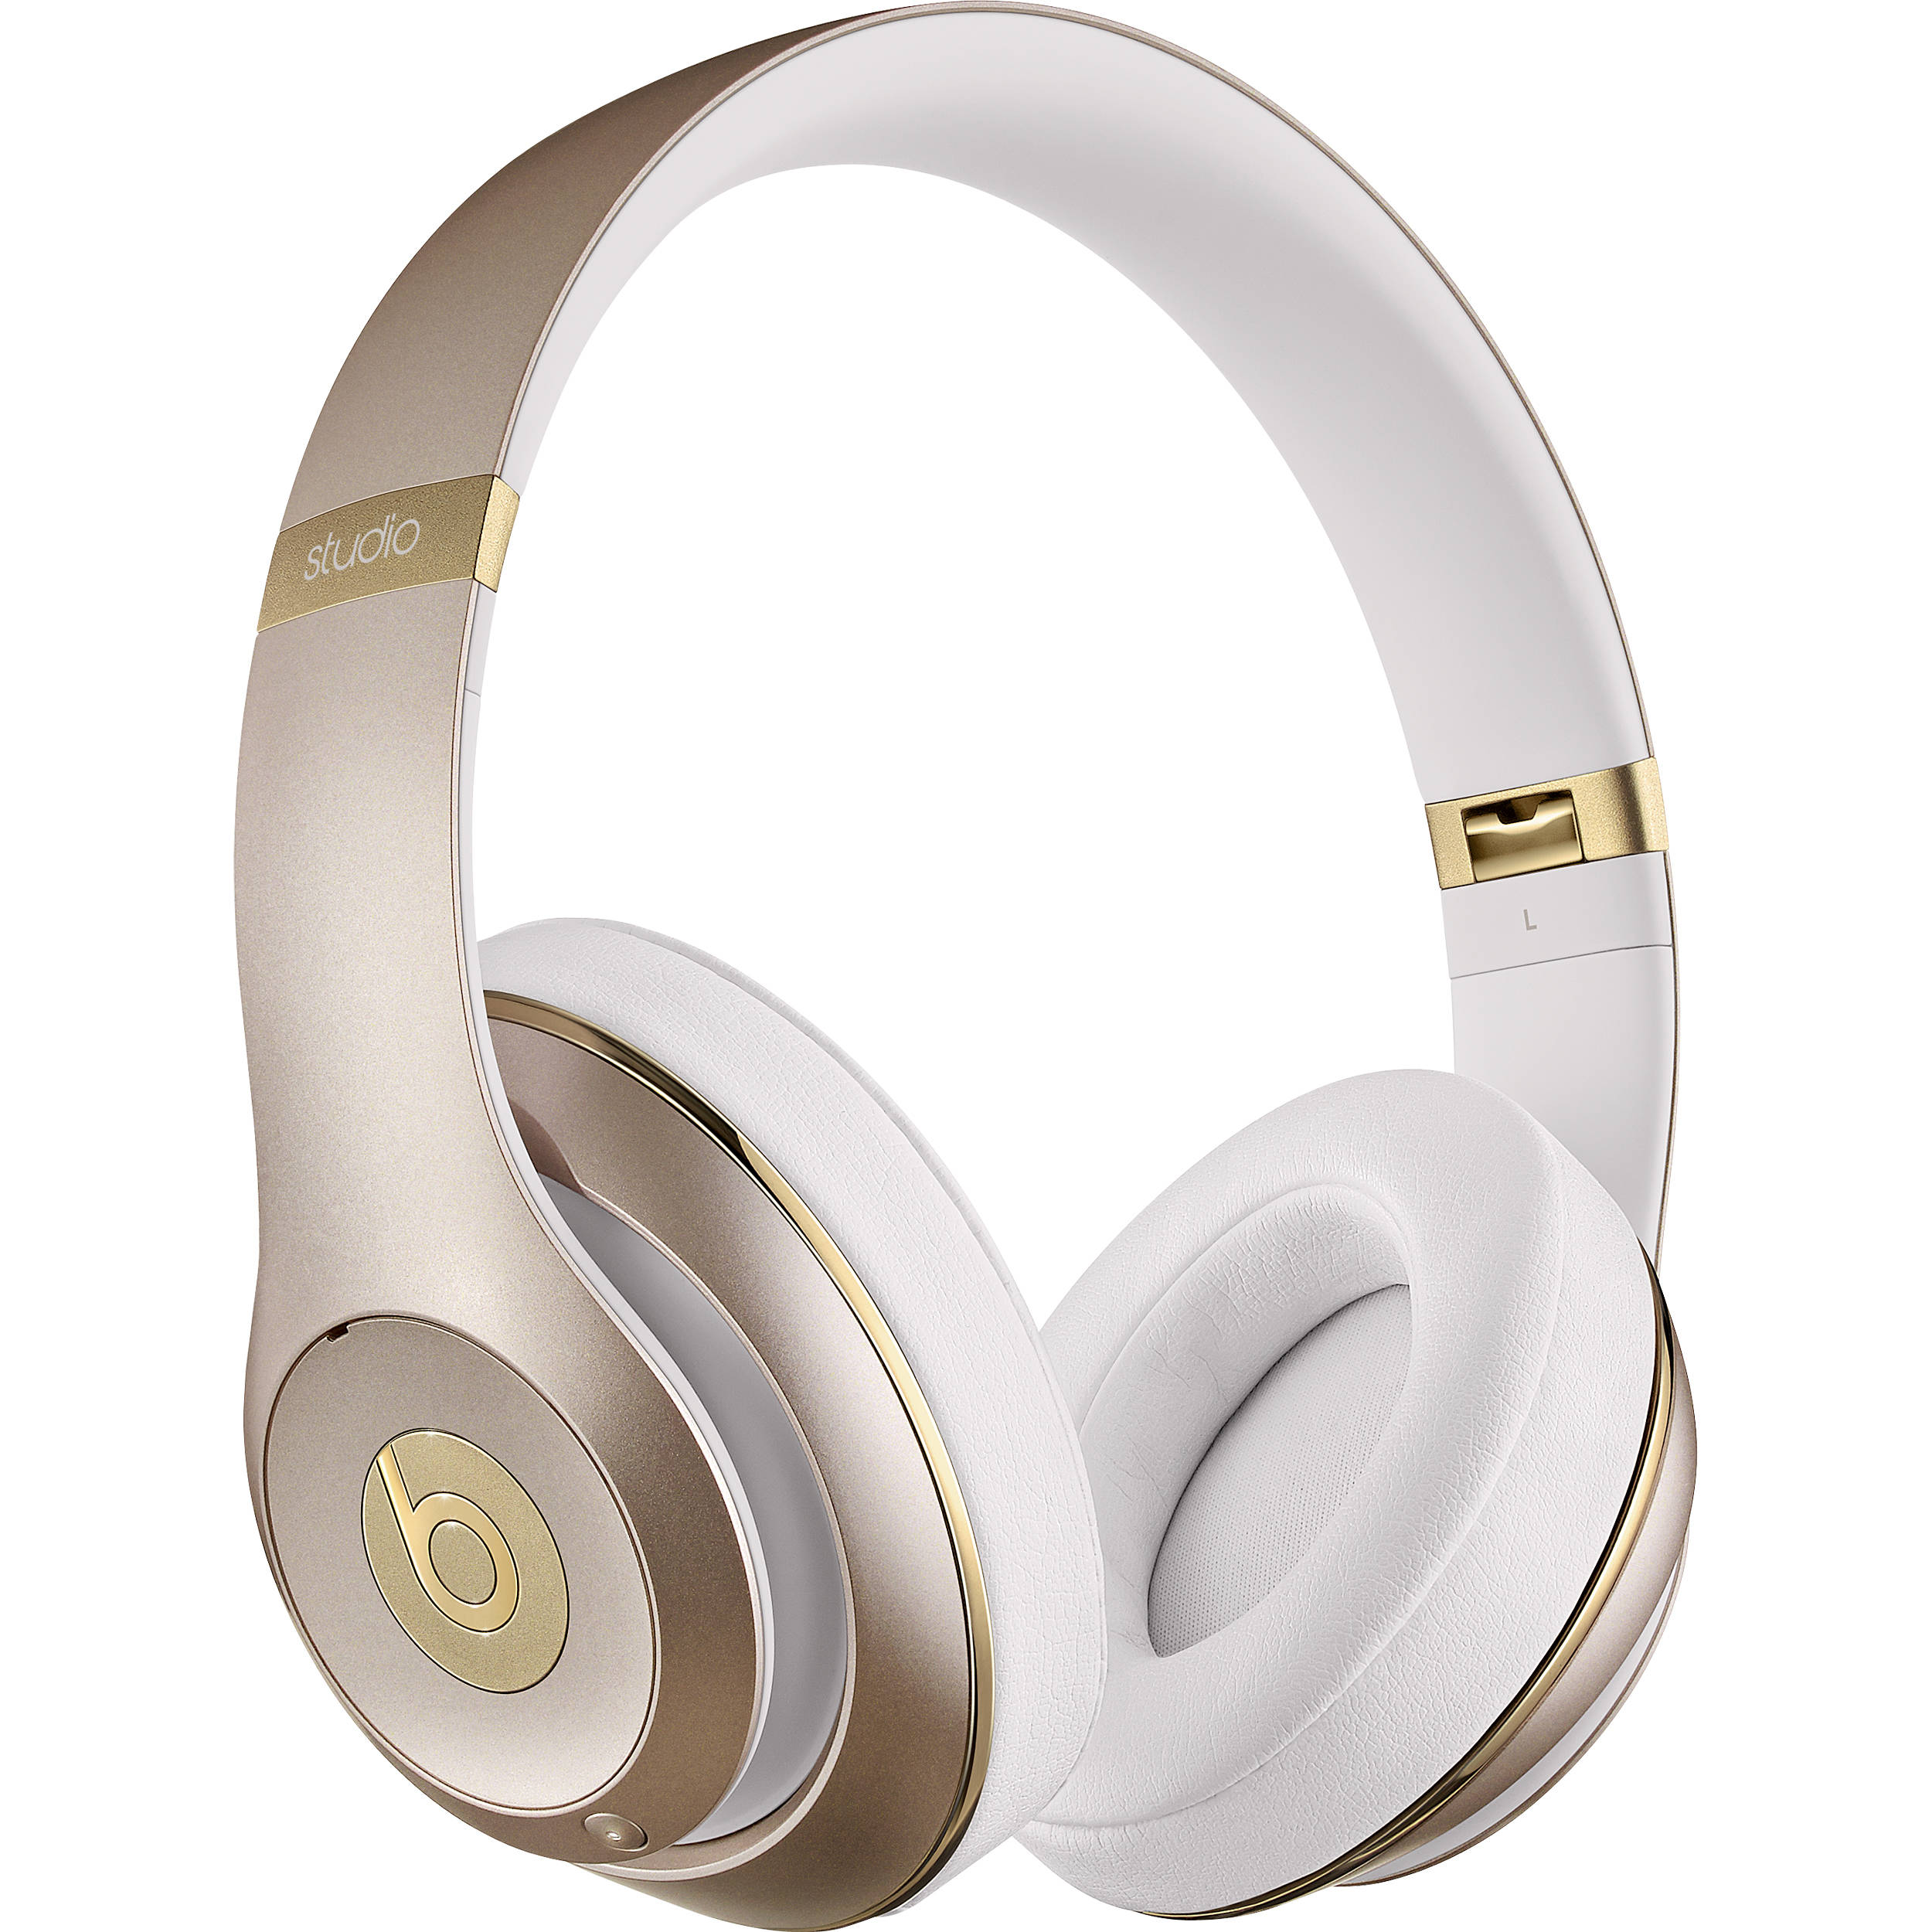 Beats earbuds white and gold - wireless earbuds neckband white